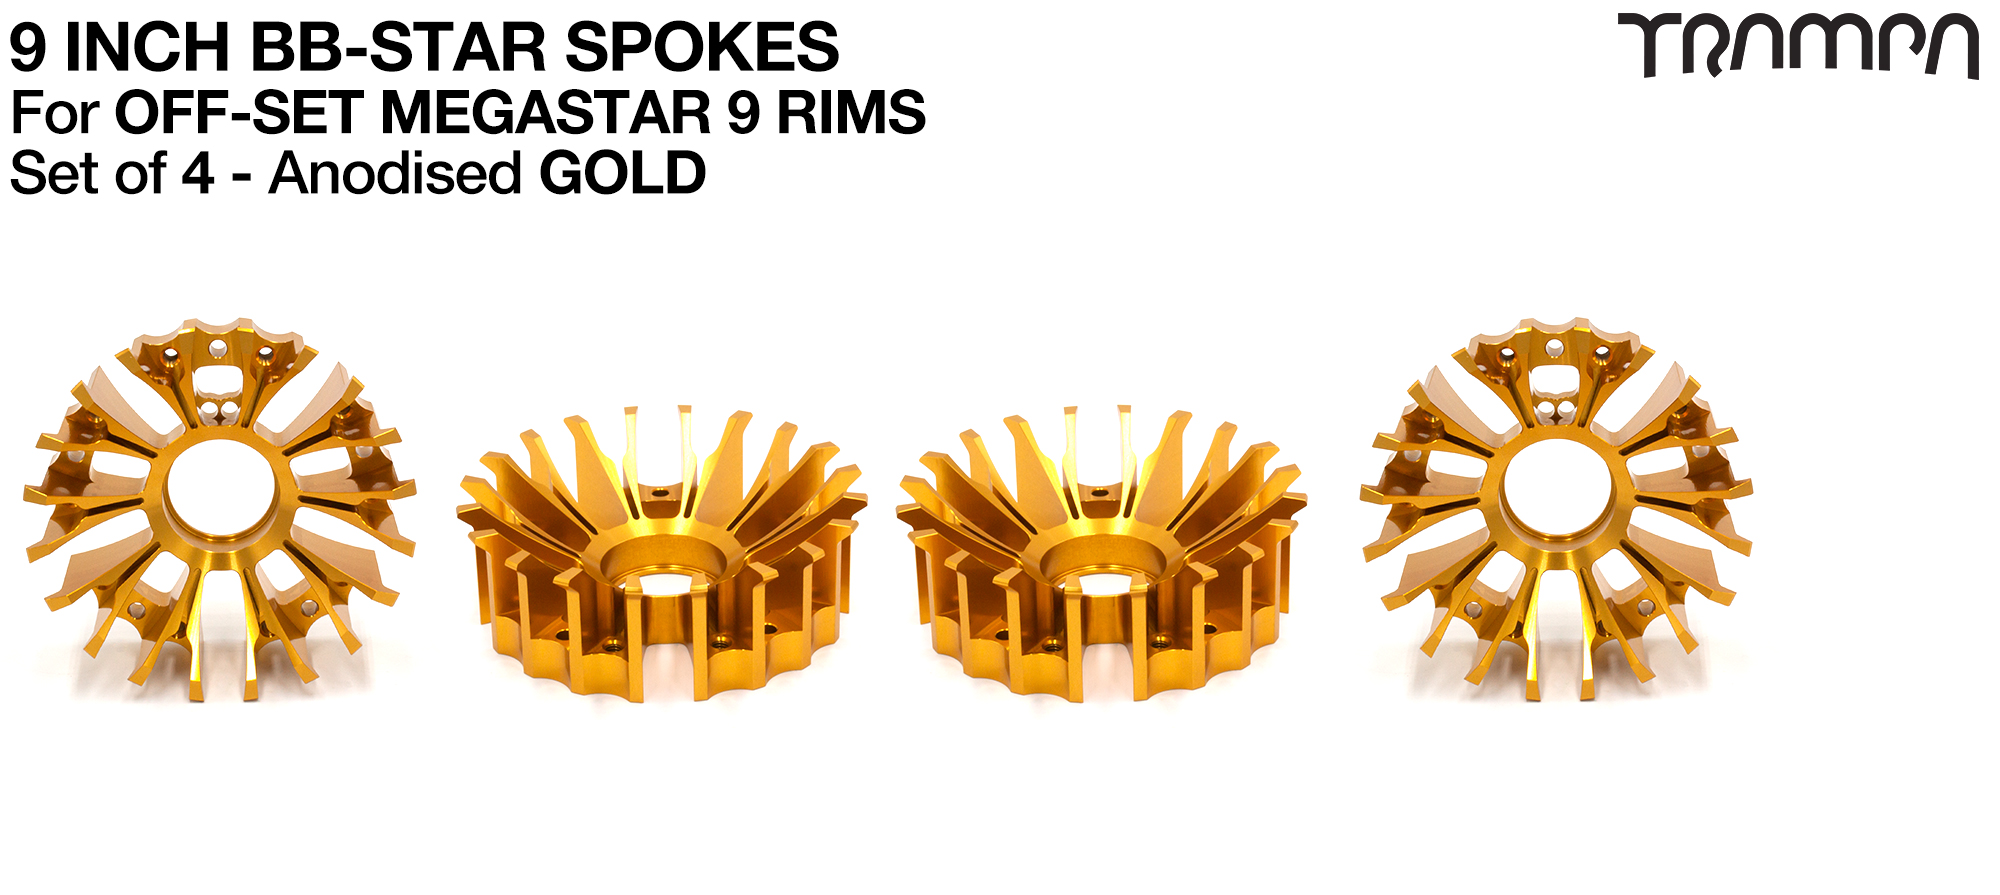 BBStar Spoke for SUPERSTAR or any size MEGASTAR rims - Extruded T6 Aluminium Heat treated & CNC Precision milled -  GOLD